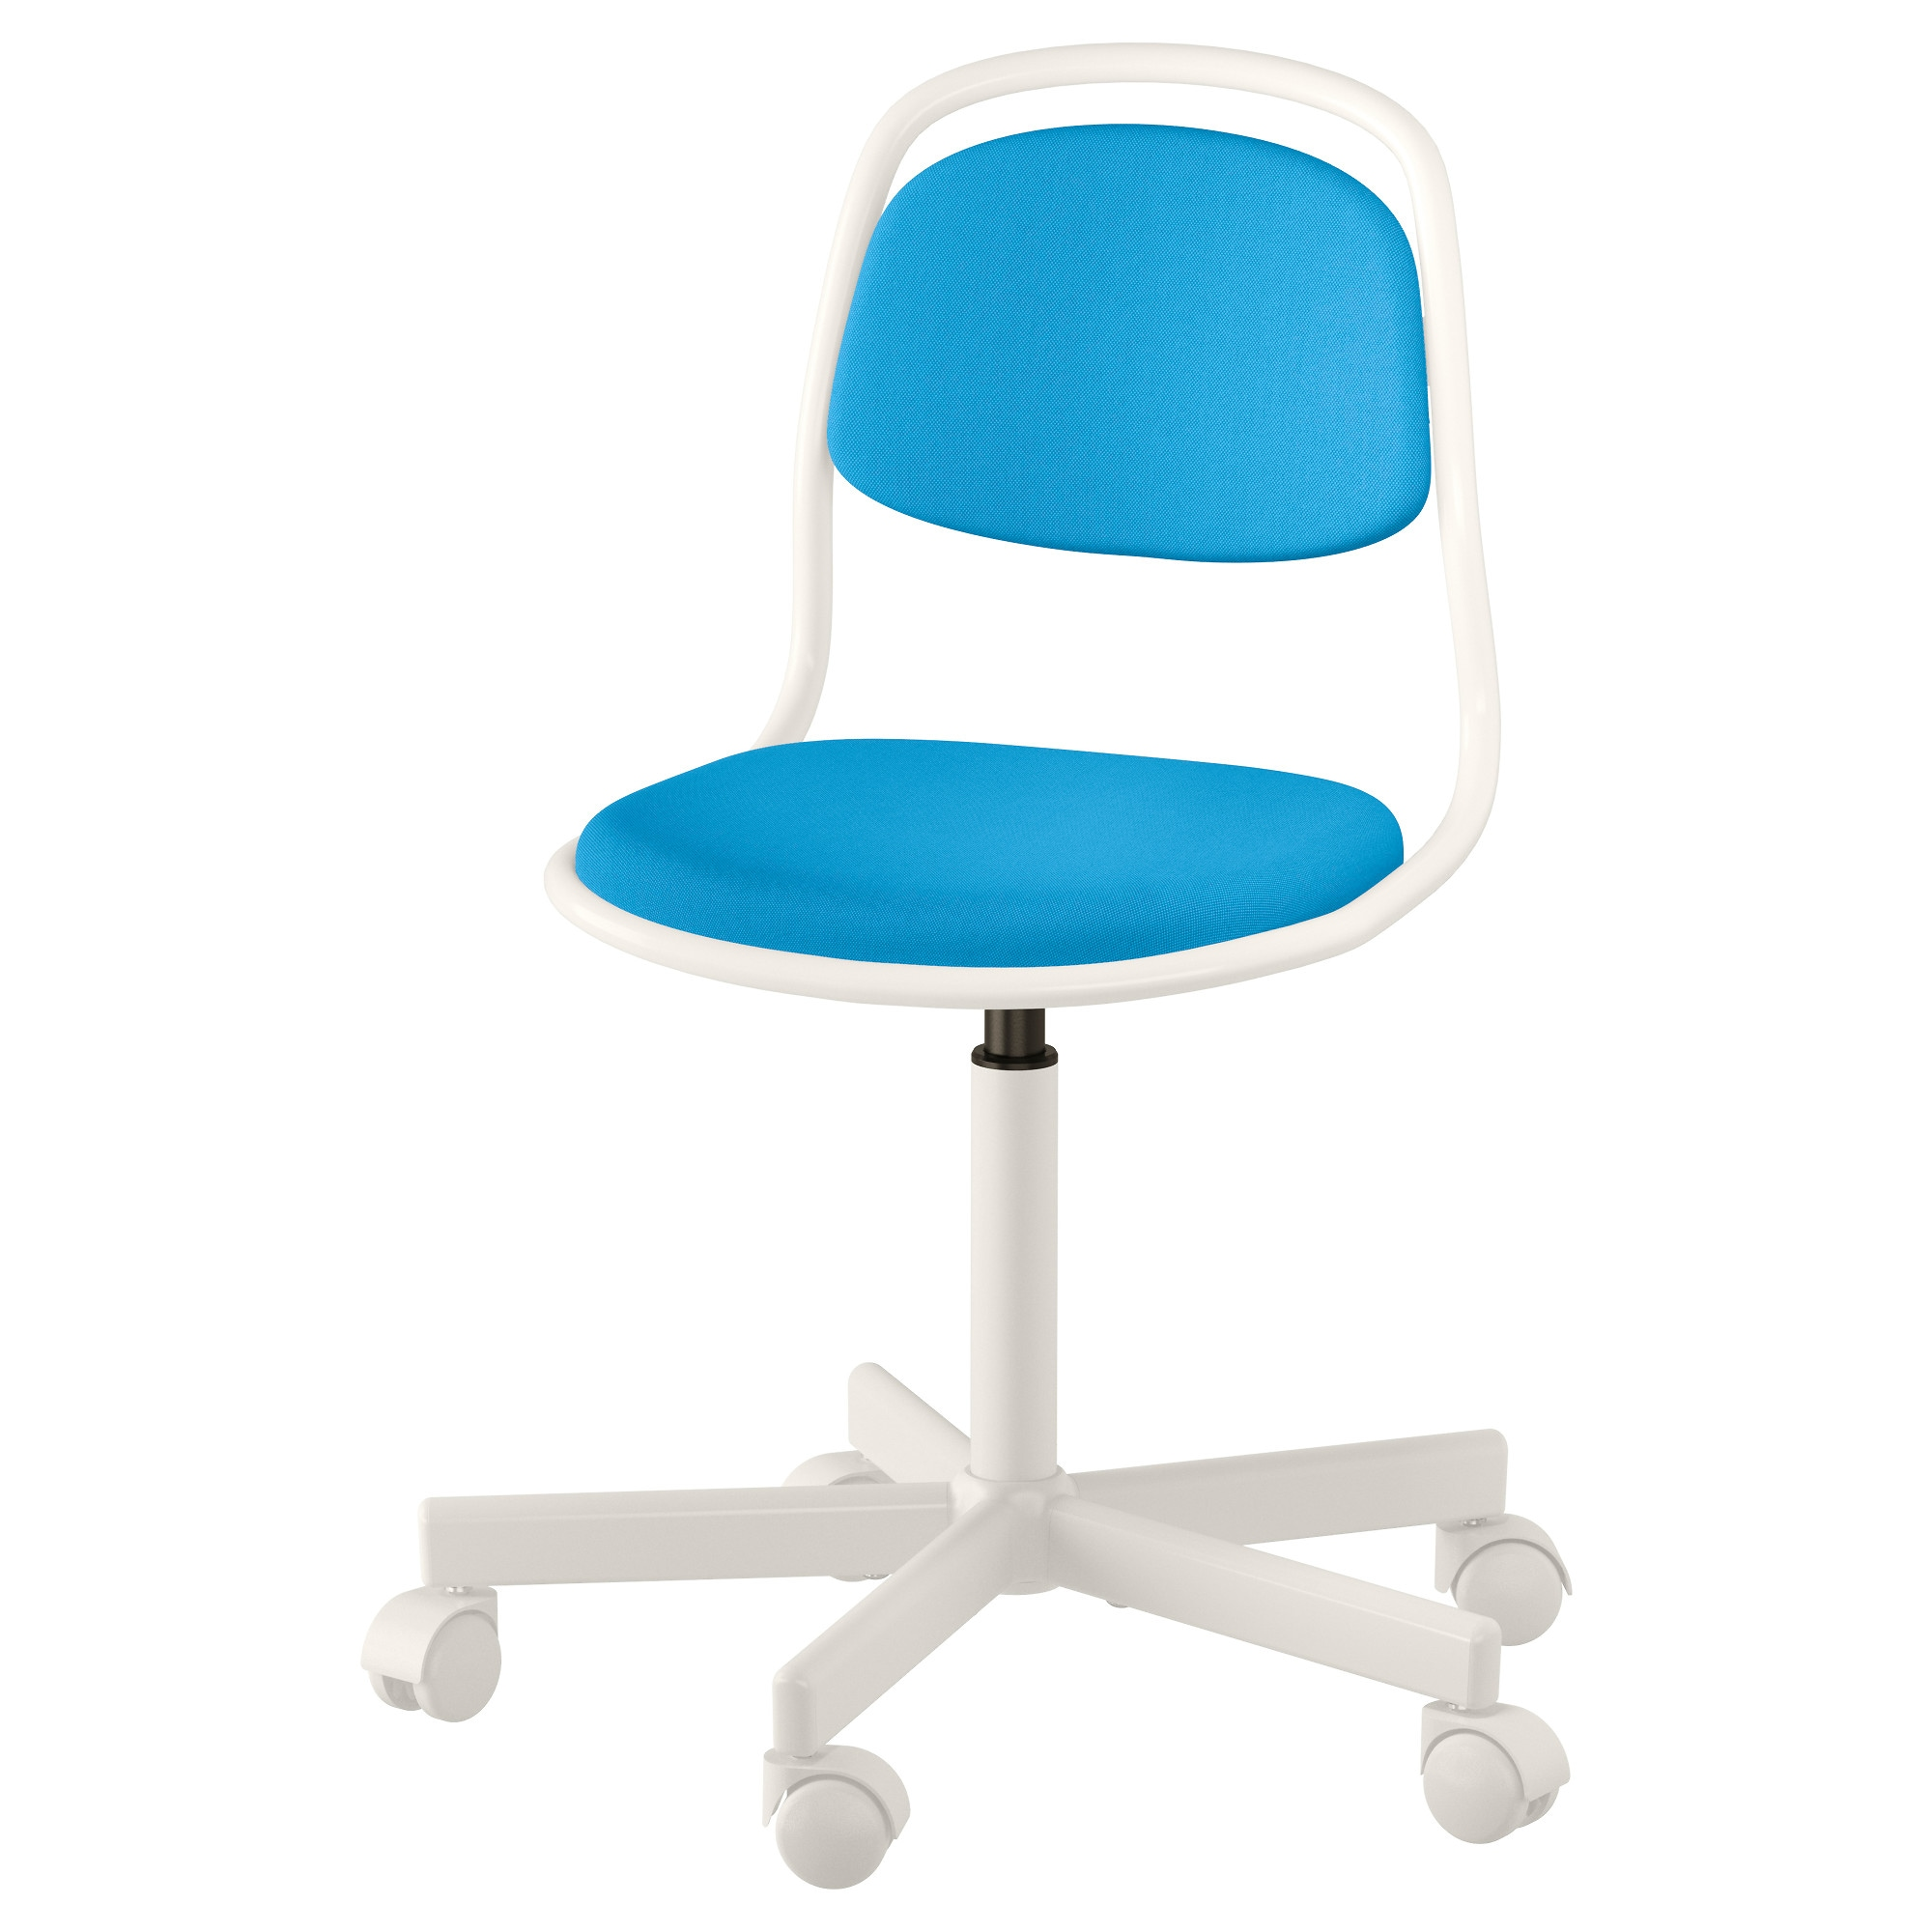 swivel dining base patara viesso camira wool turquoise star desk aqua chair